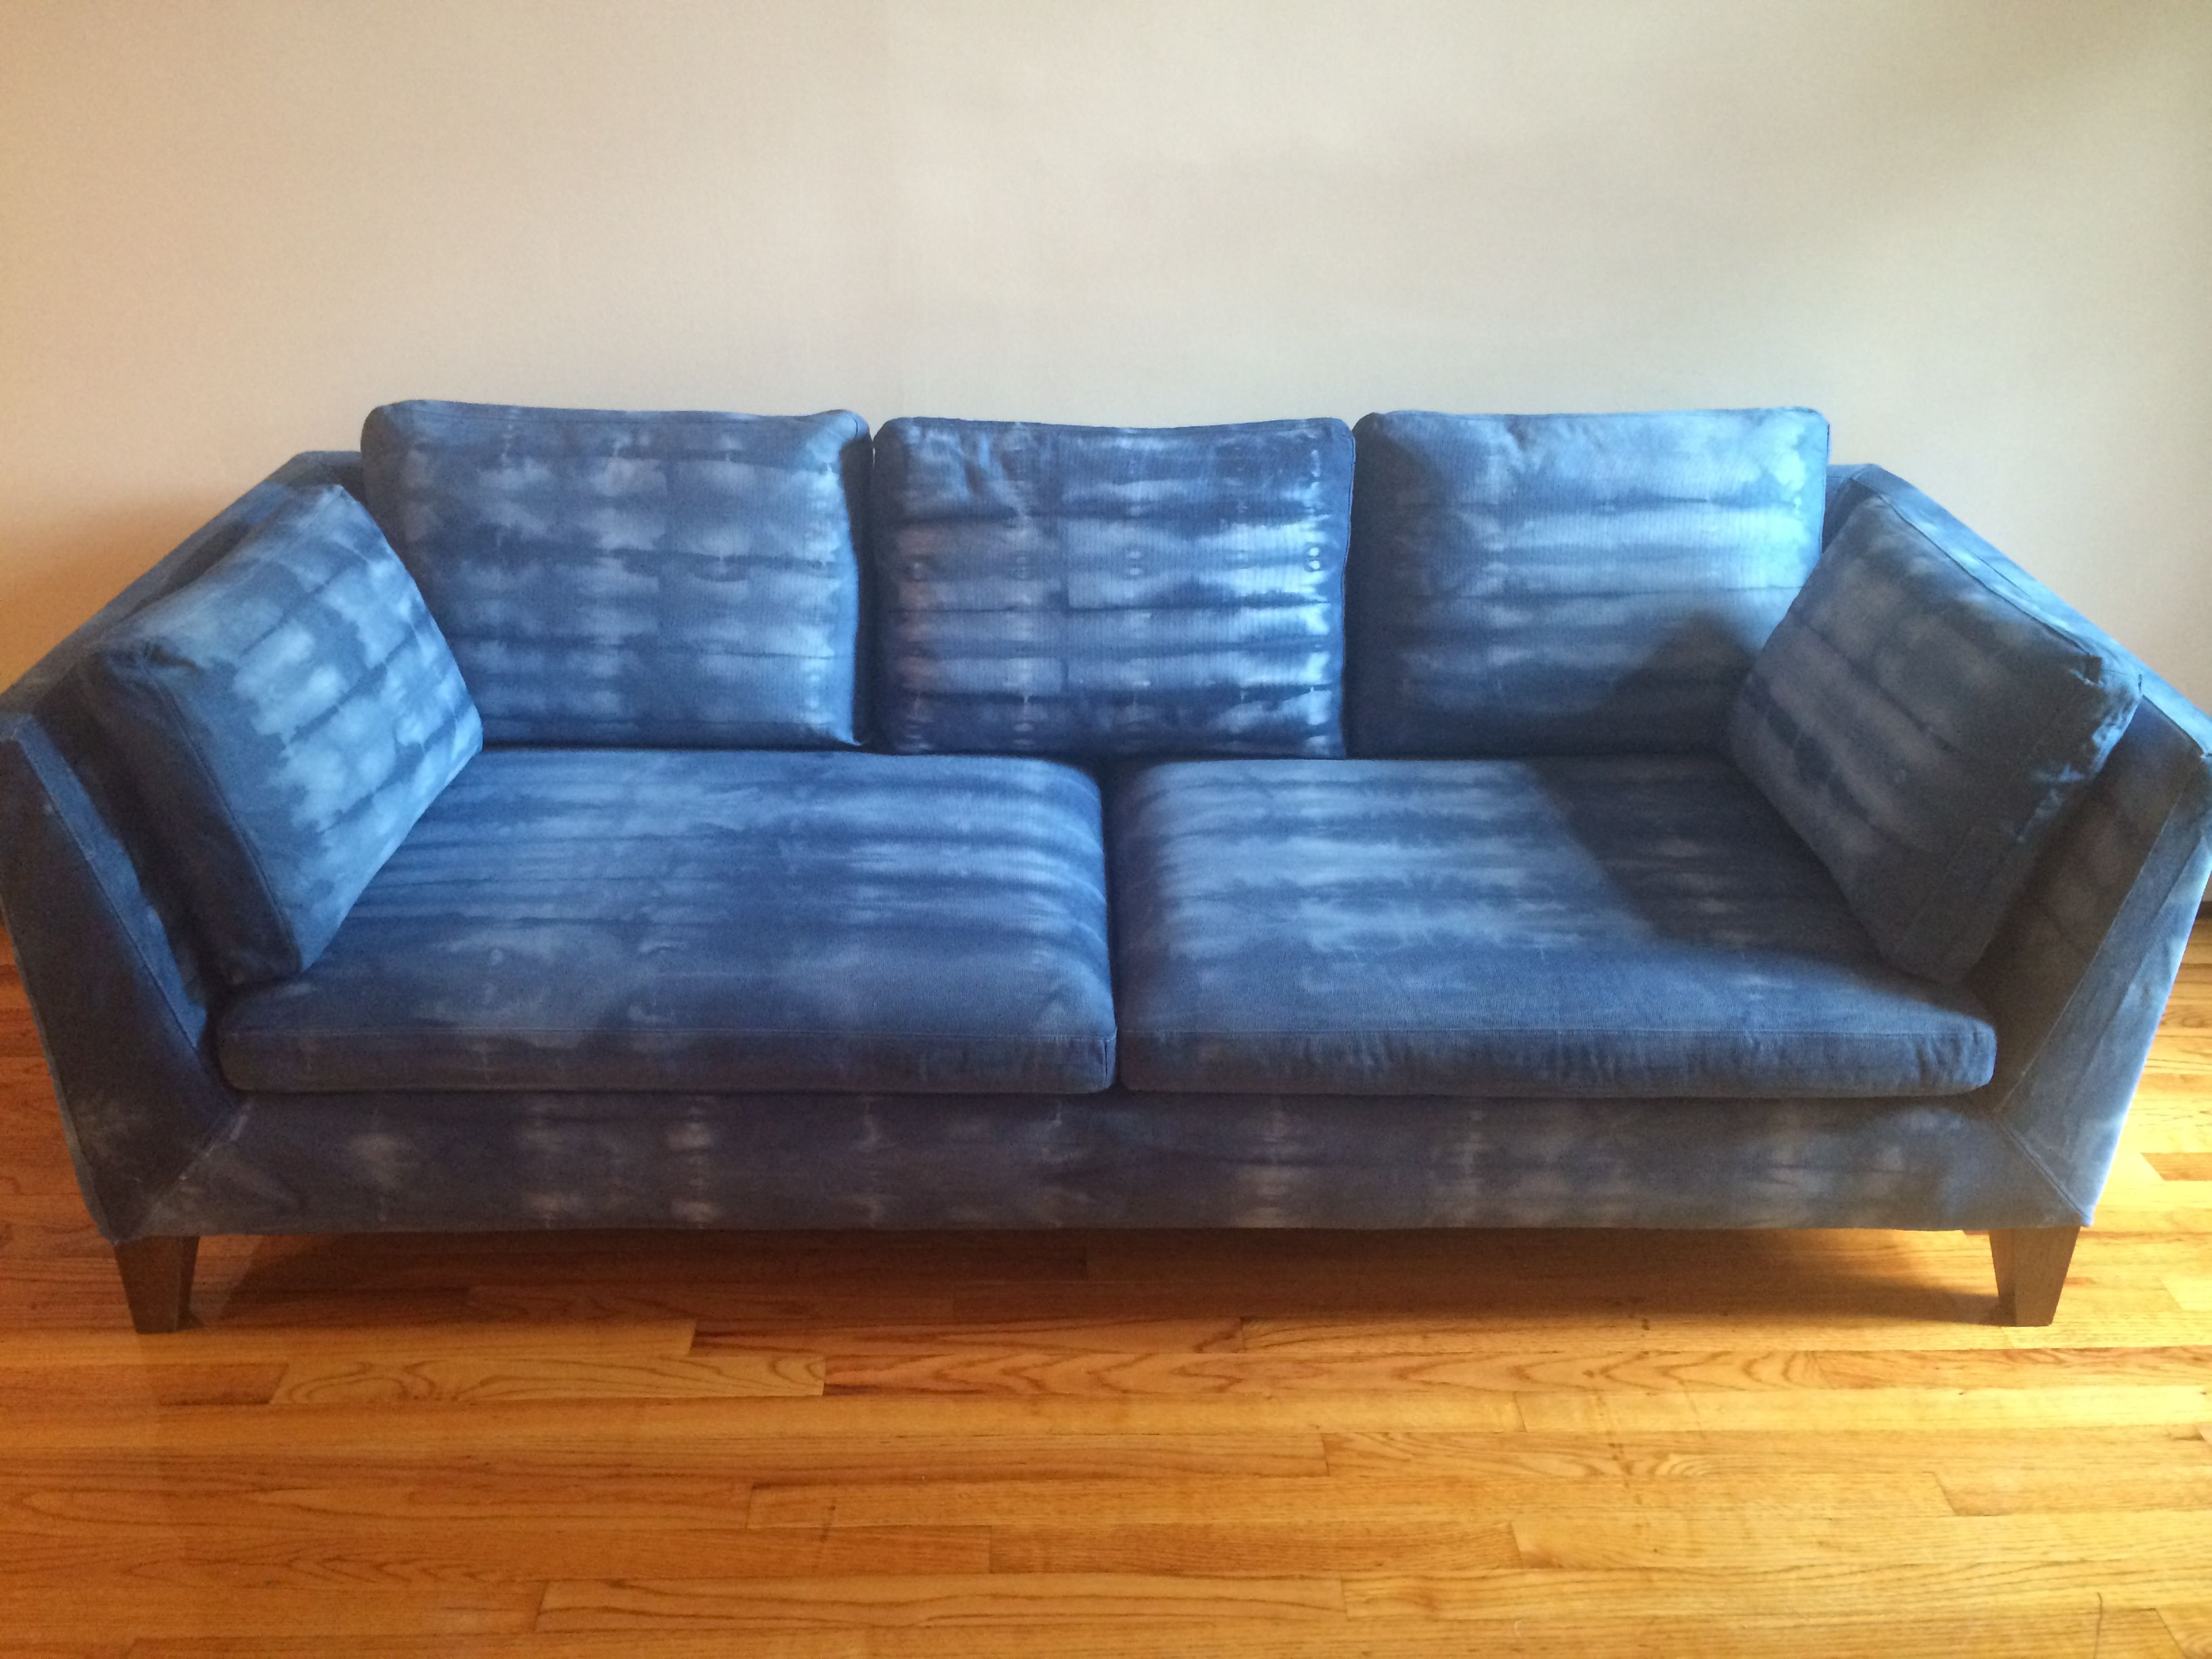 Dye Sofa Fabric How To Paint A Sofa With Fabric Spray You